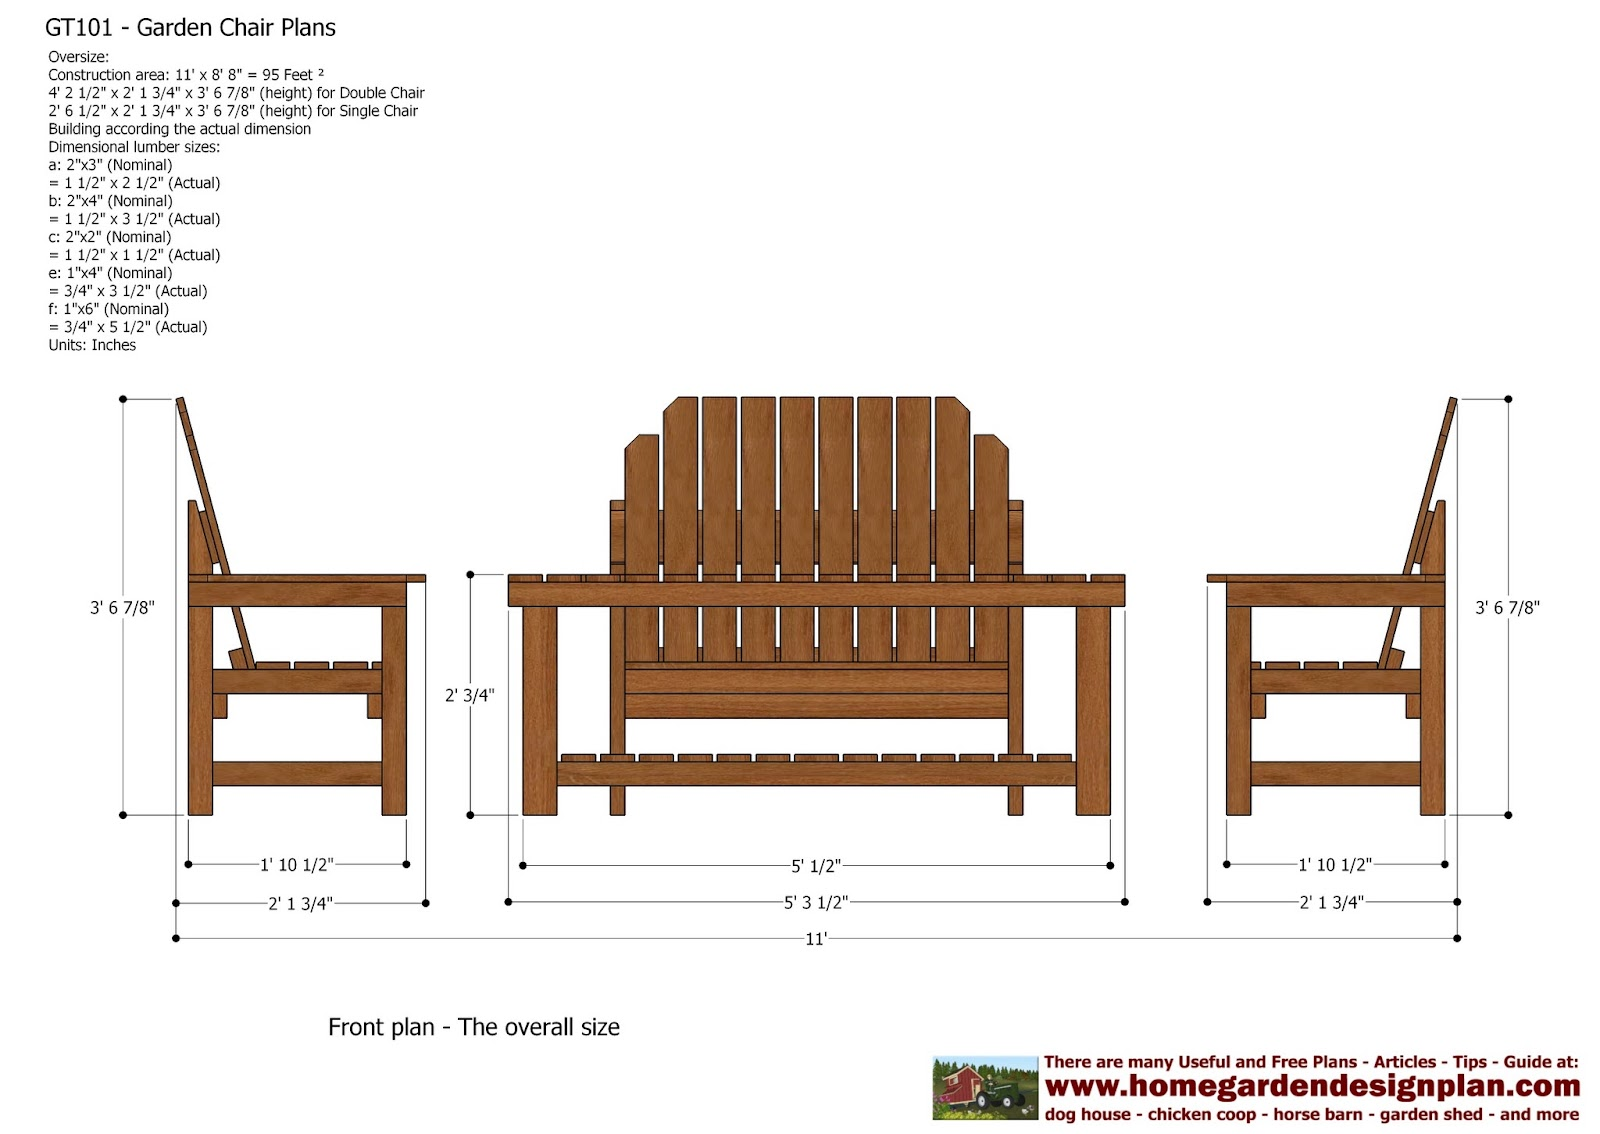 chair design garden tablecloths and covers for rent home plans gt101 teak table out